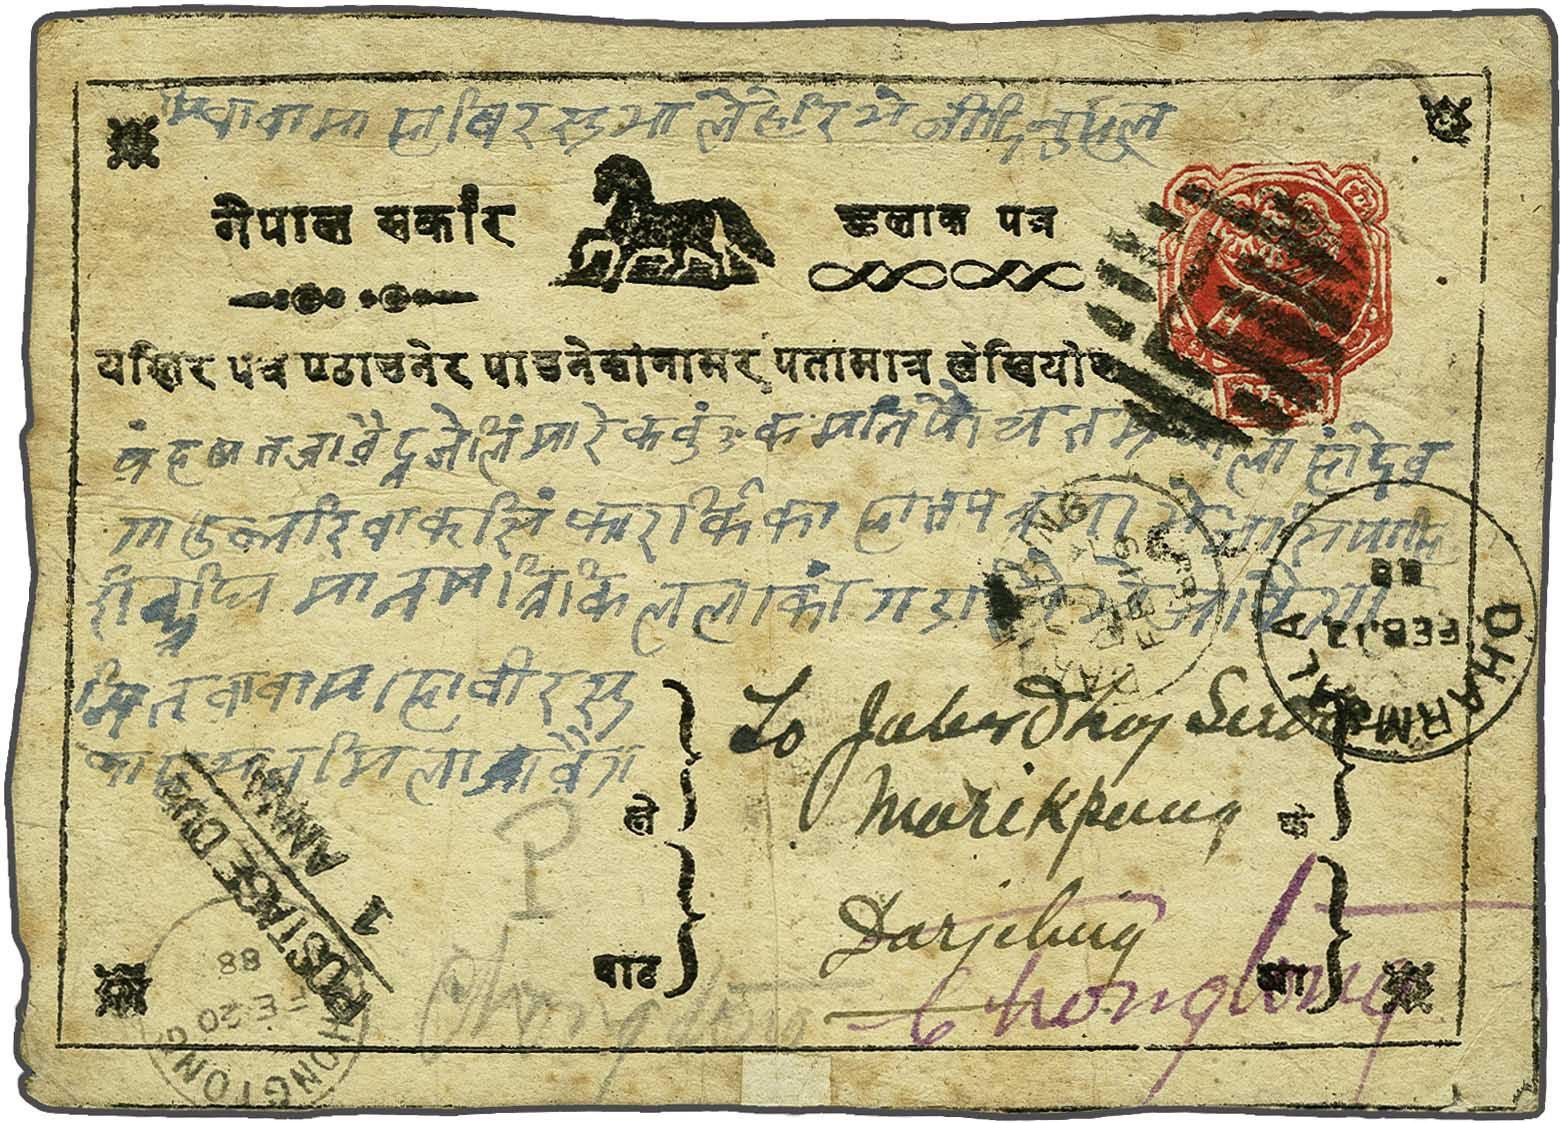 Lot 4 - Great Britain and former colonies Nepal -  Corinphila Veilingen Auction 245-246 Day 1 - Nepal - The Dick van der Wateren Collection, Foreign countries - Single lots, Picture postcards